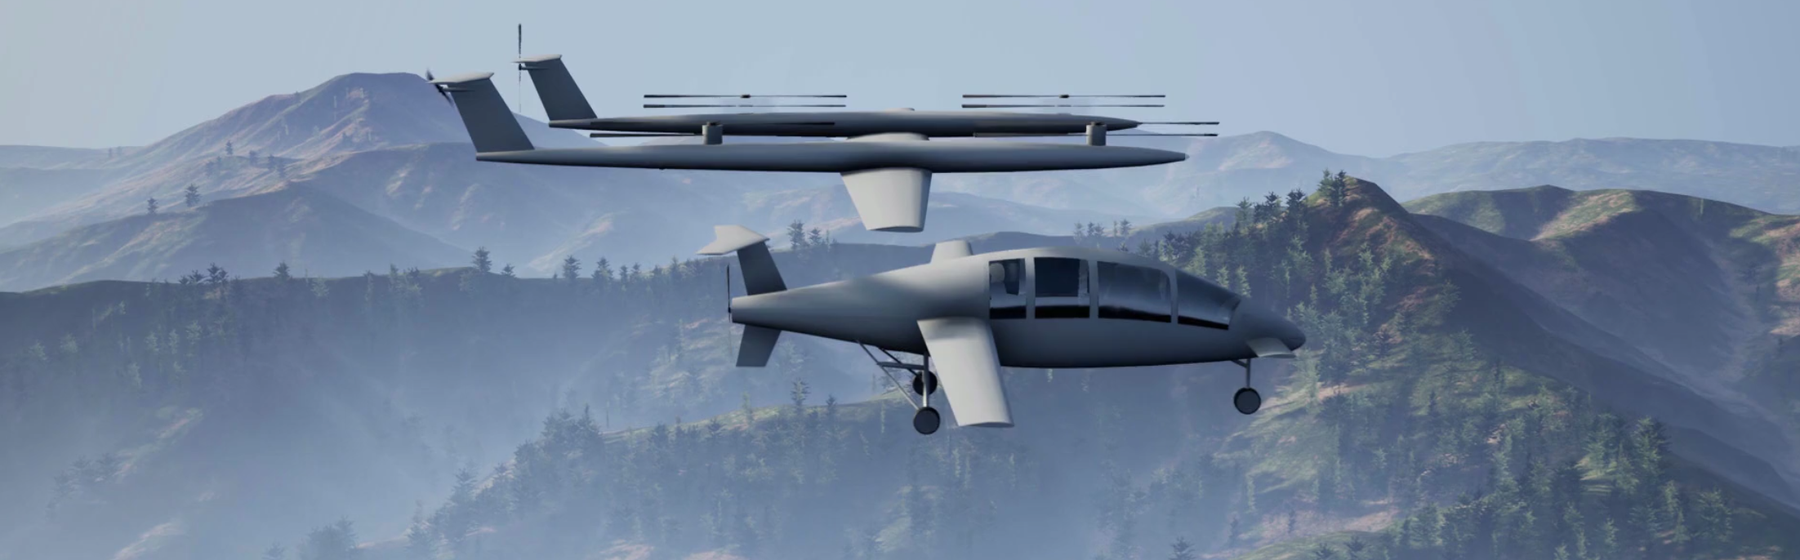 Talyn Air eVTOL prototype